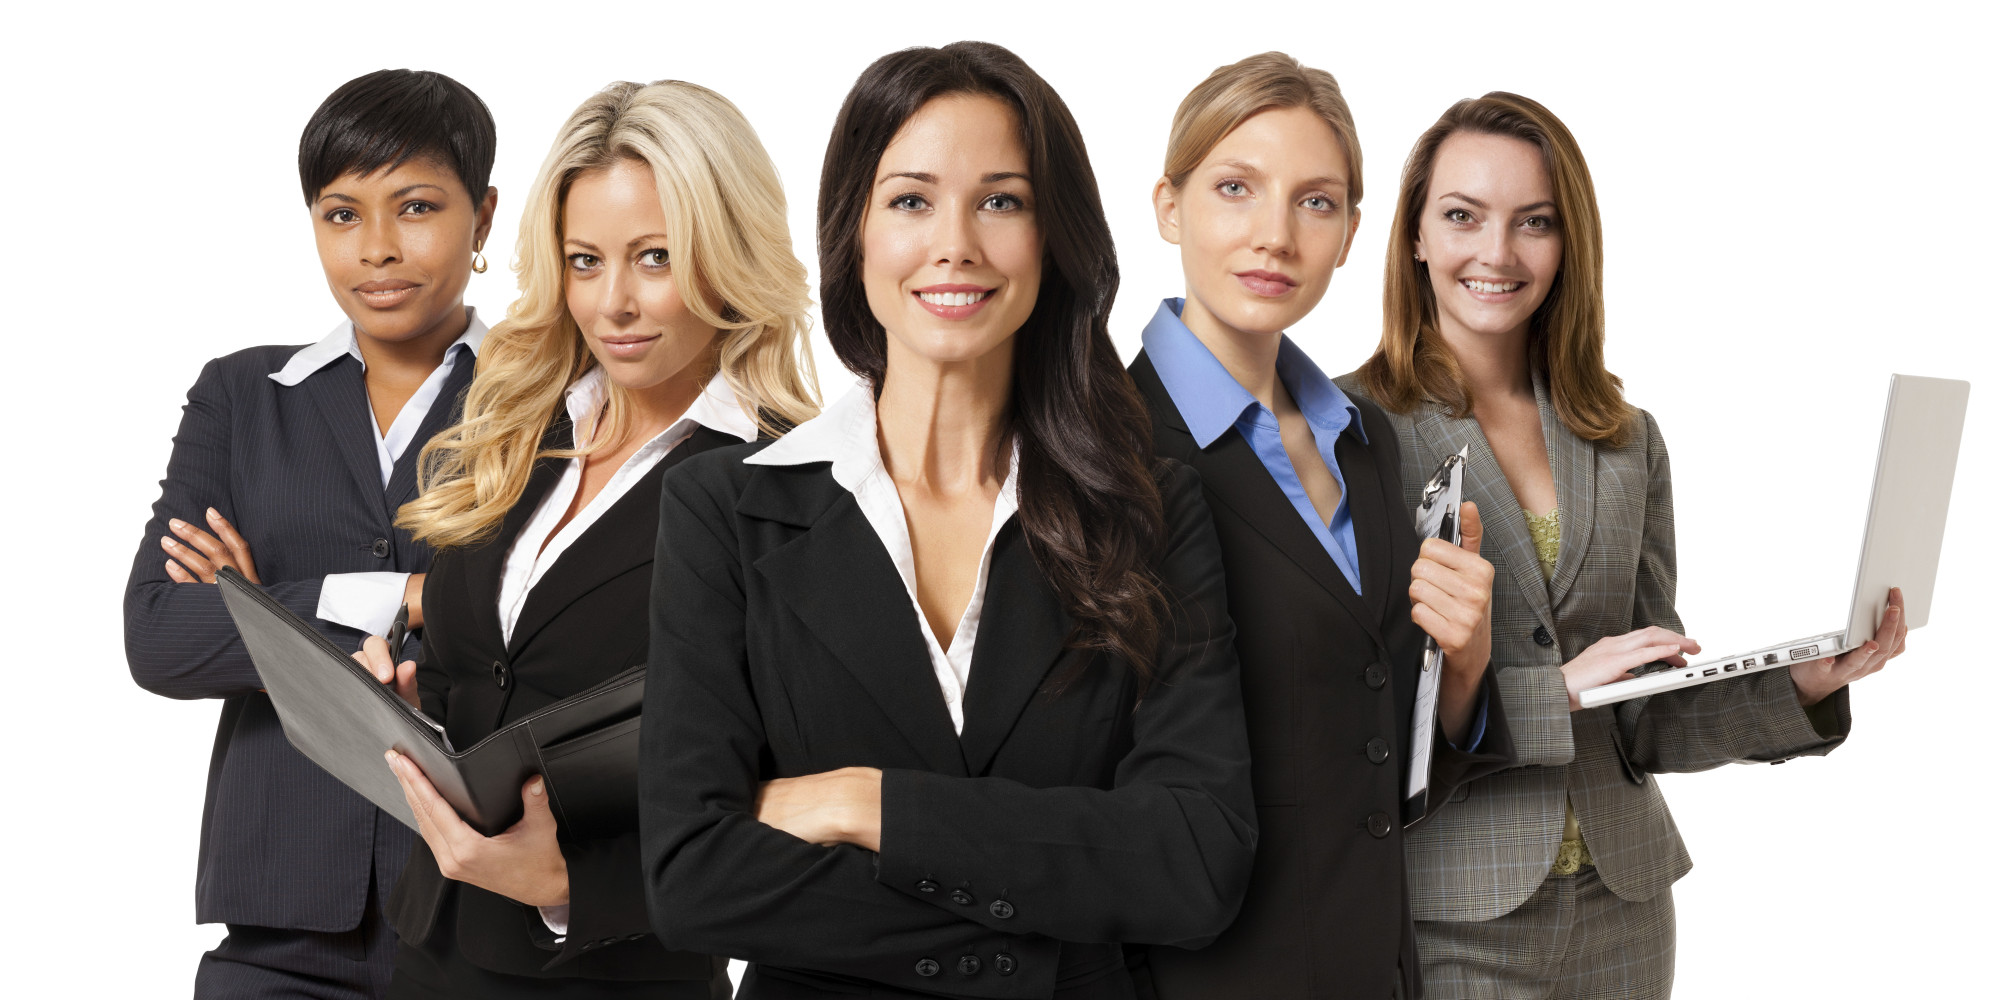 12 Things Successful Women Do Differently